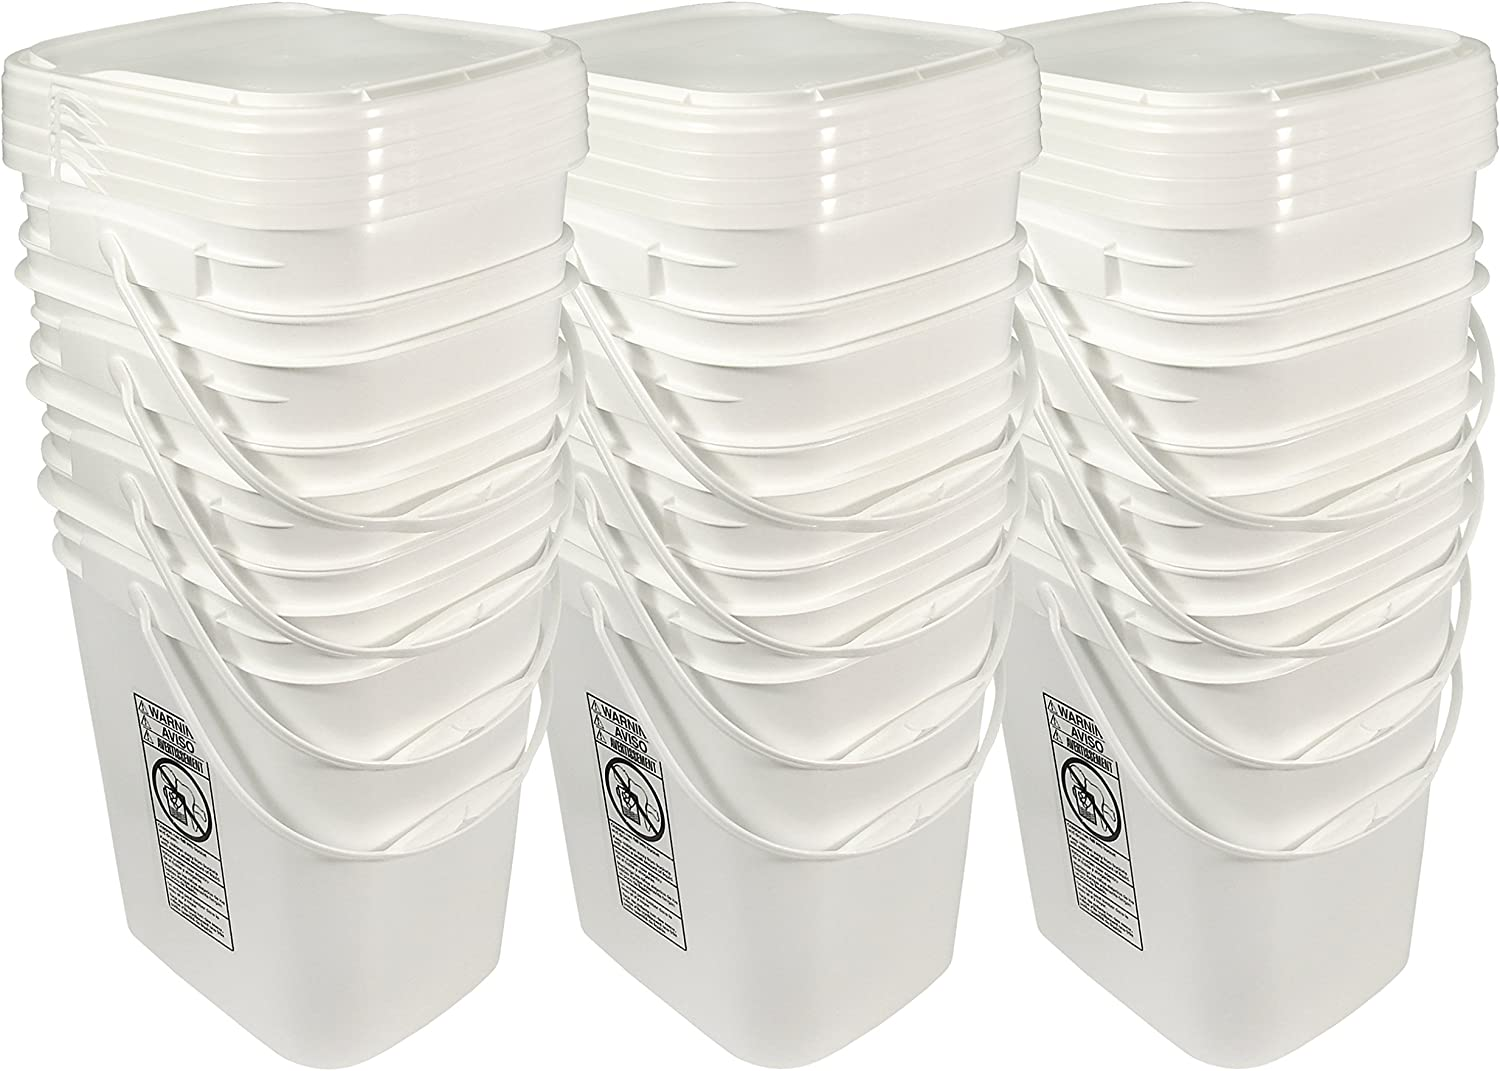 5.3 Gallon White Rectangular Bucket/Pail with Hinged Snap Lid, 12 Pack